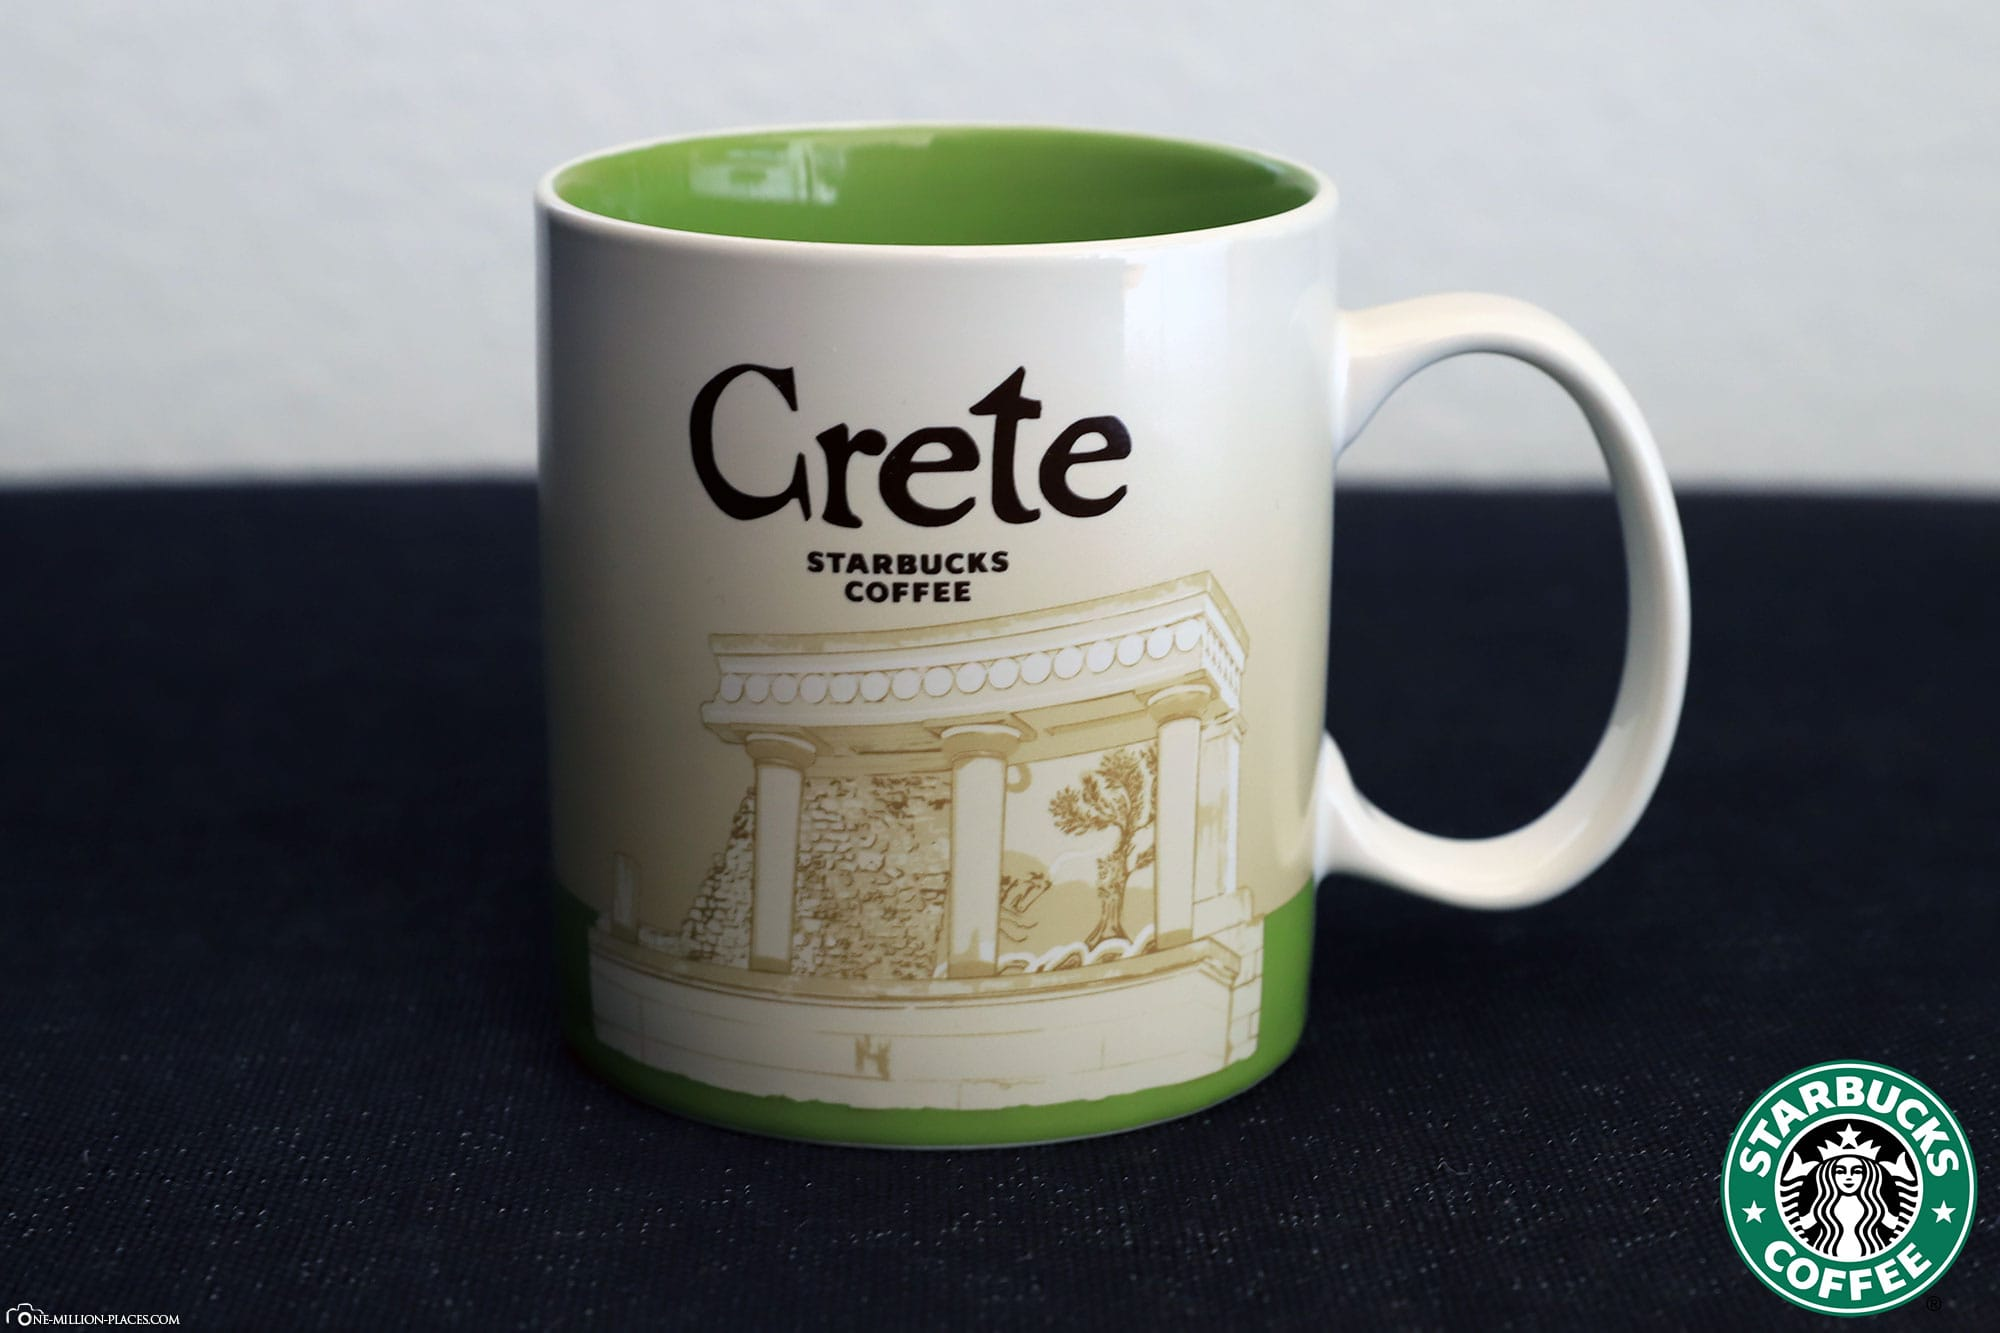 Crete, Starbucks Cup, Global Icon Series, City Mugs, Collection, Greece, Travelreport